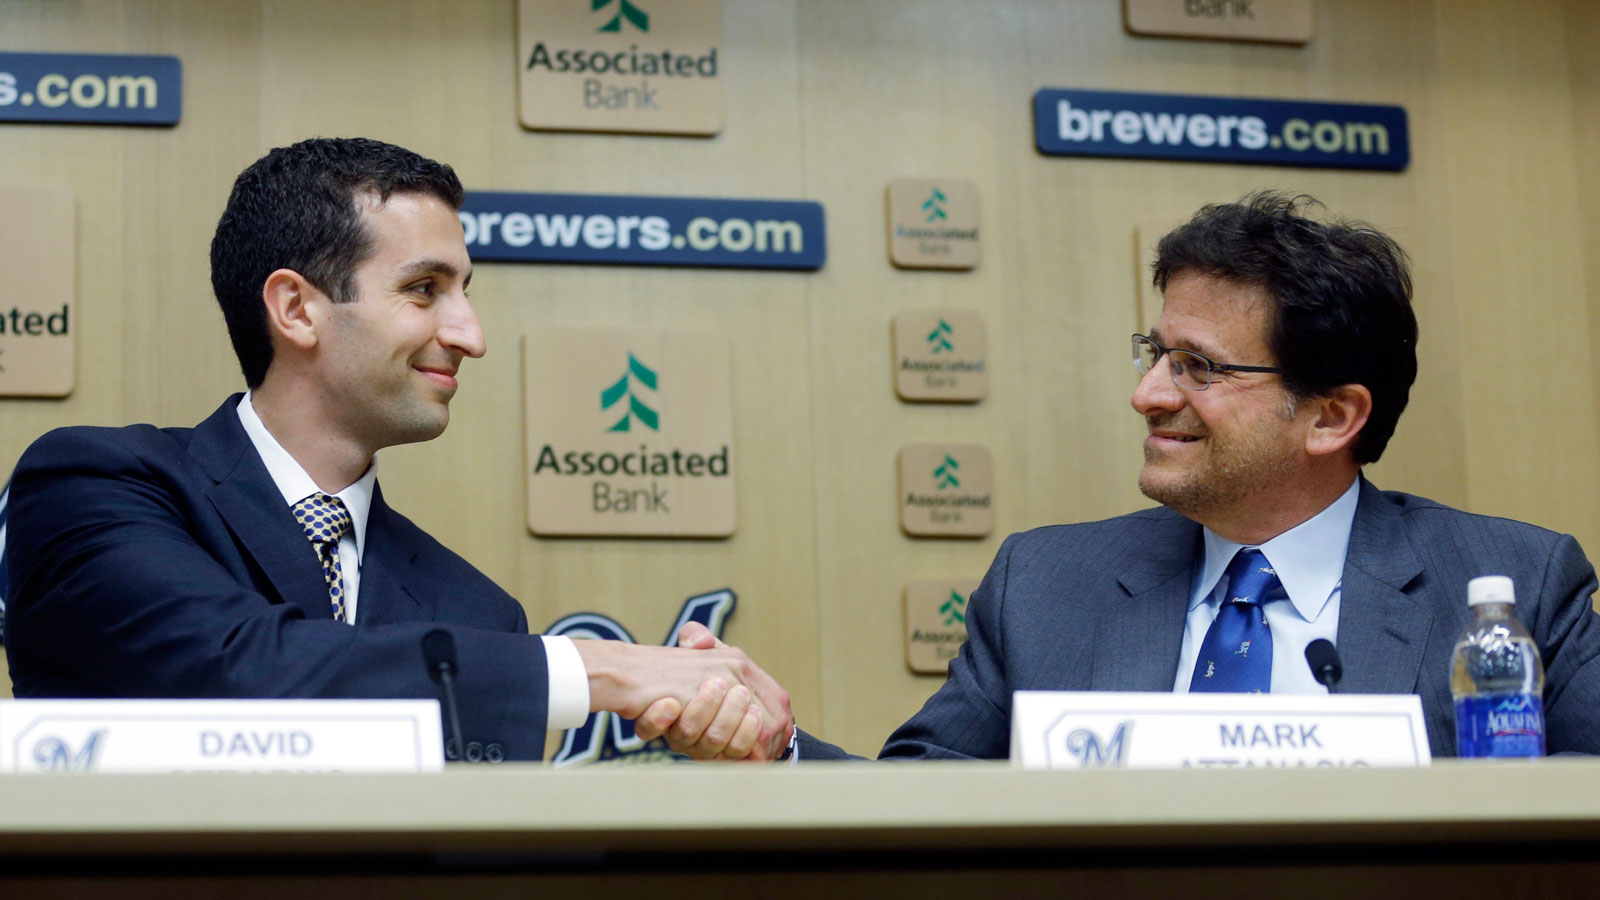 David Stearns shakes hands with Milwaukee Brewers owner Mark Attanasio during a news conference Monday, Sept. 21, 2015, in Milwaukee. Stearns was introduced as the Brewers' new general manager. (AP Photo/Morry Gash)